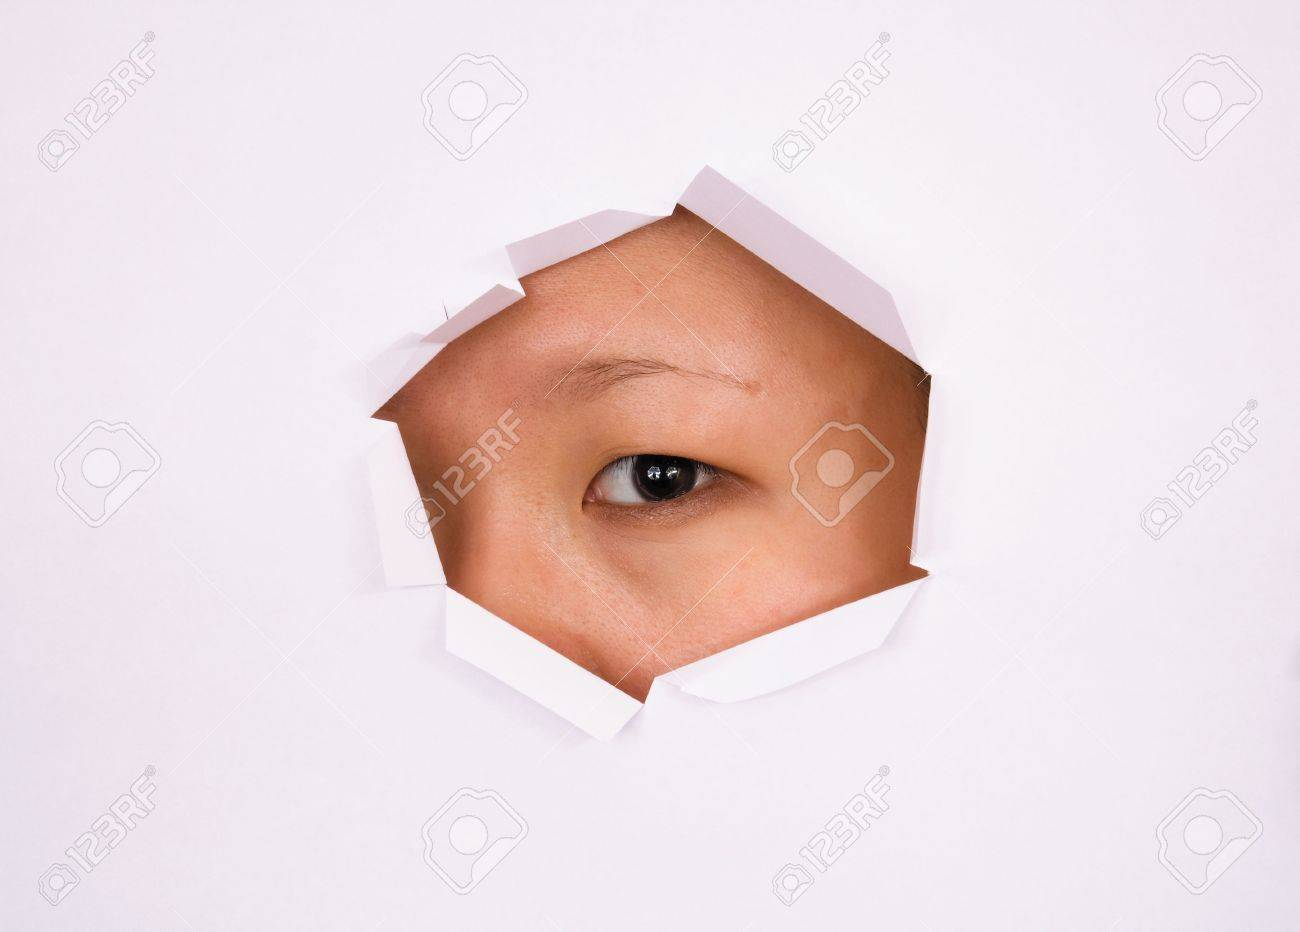 Eye looking through hole on paper surface Stock Photo - 3609244